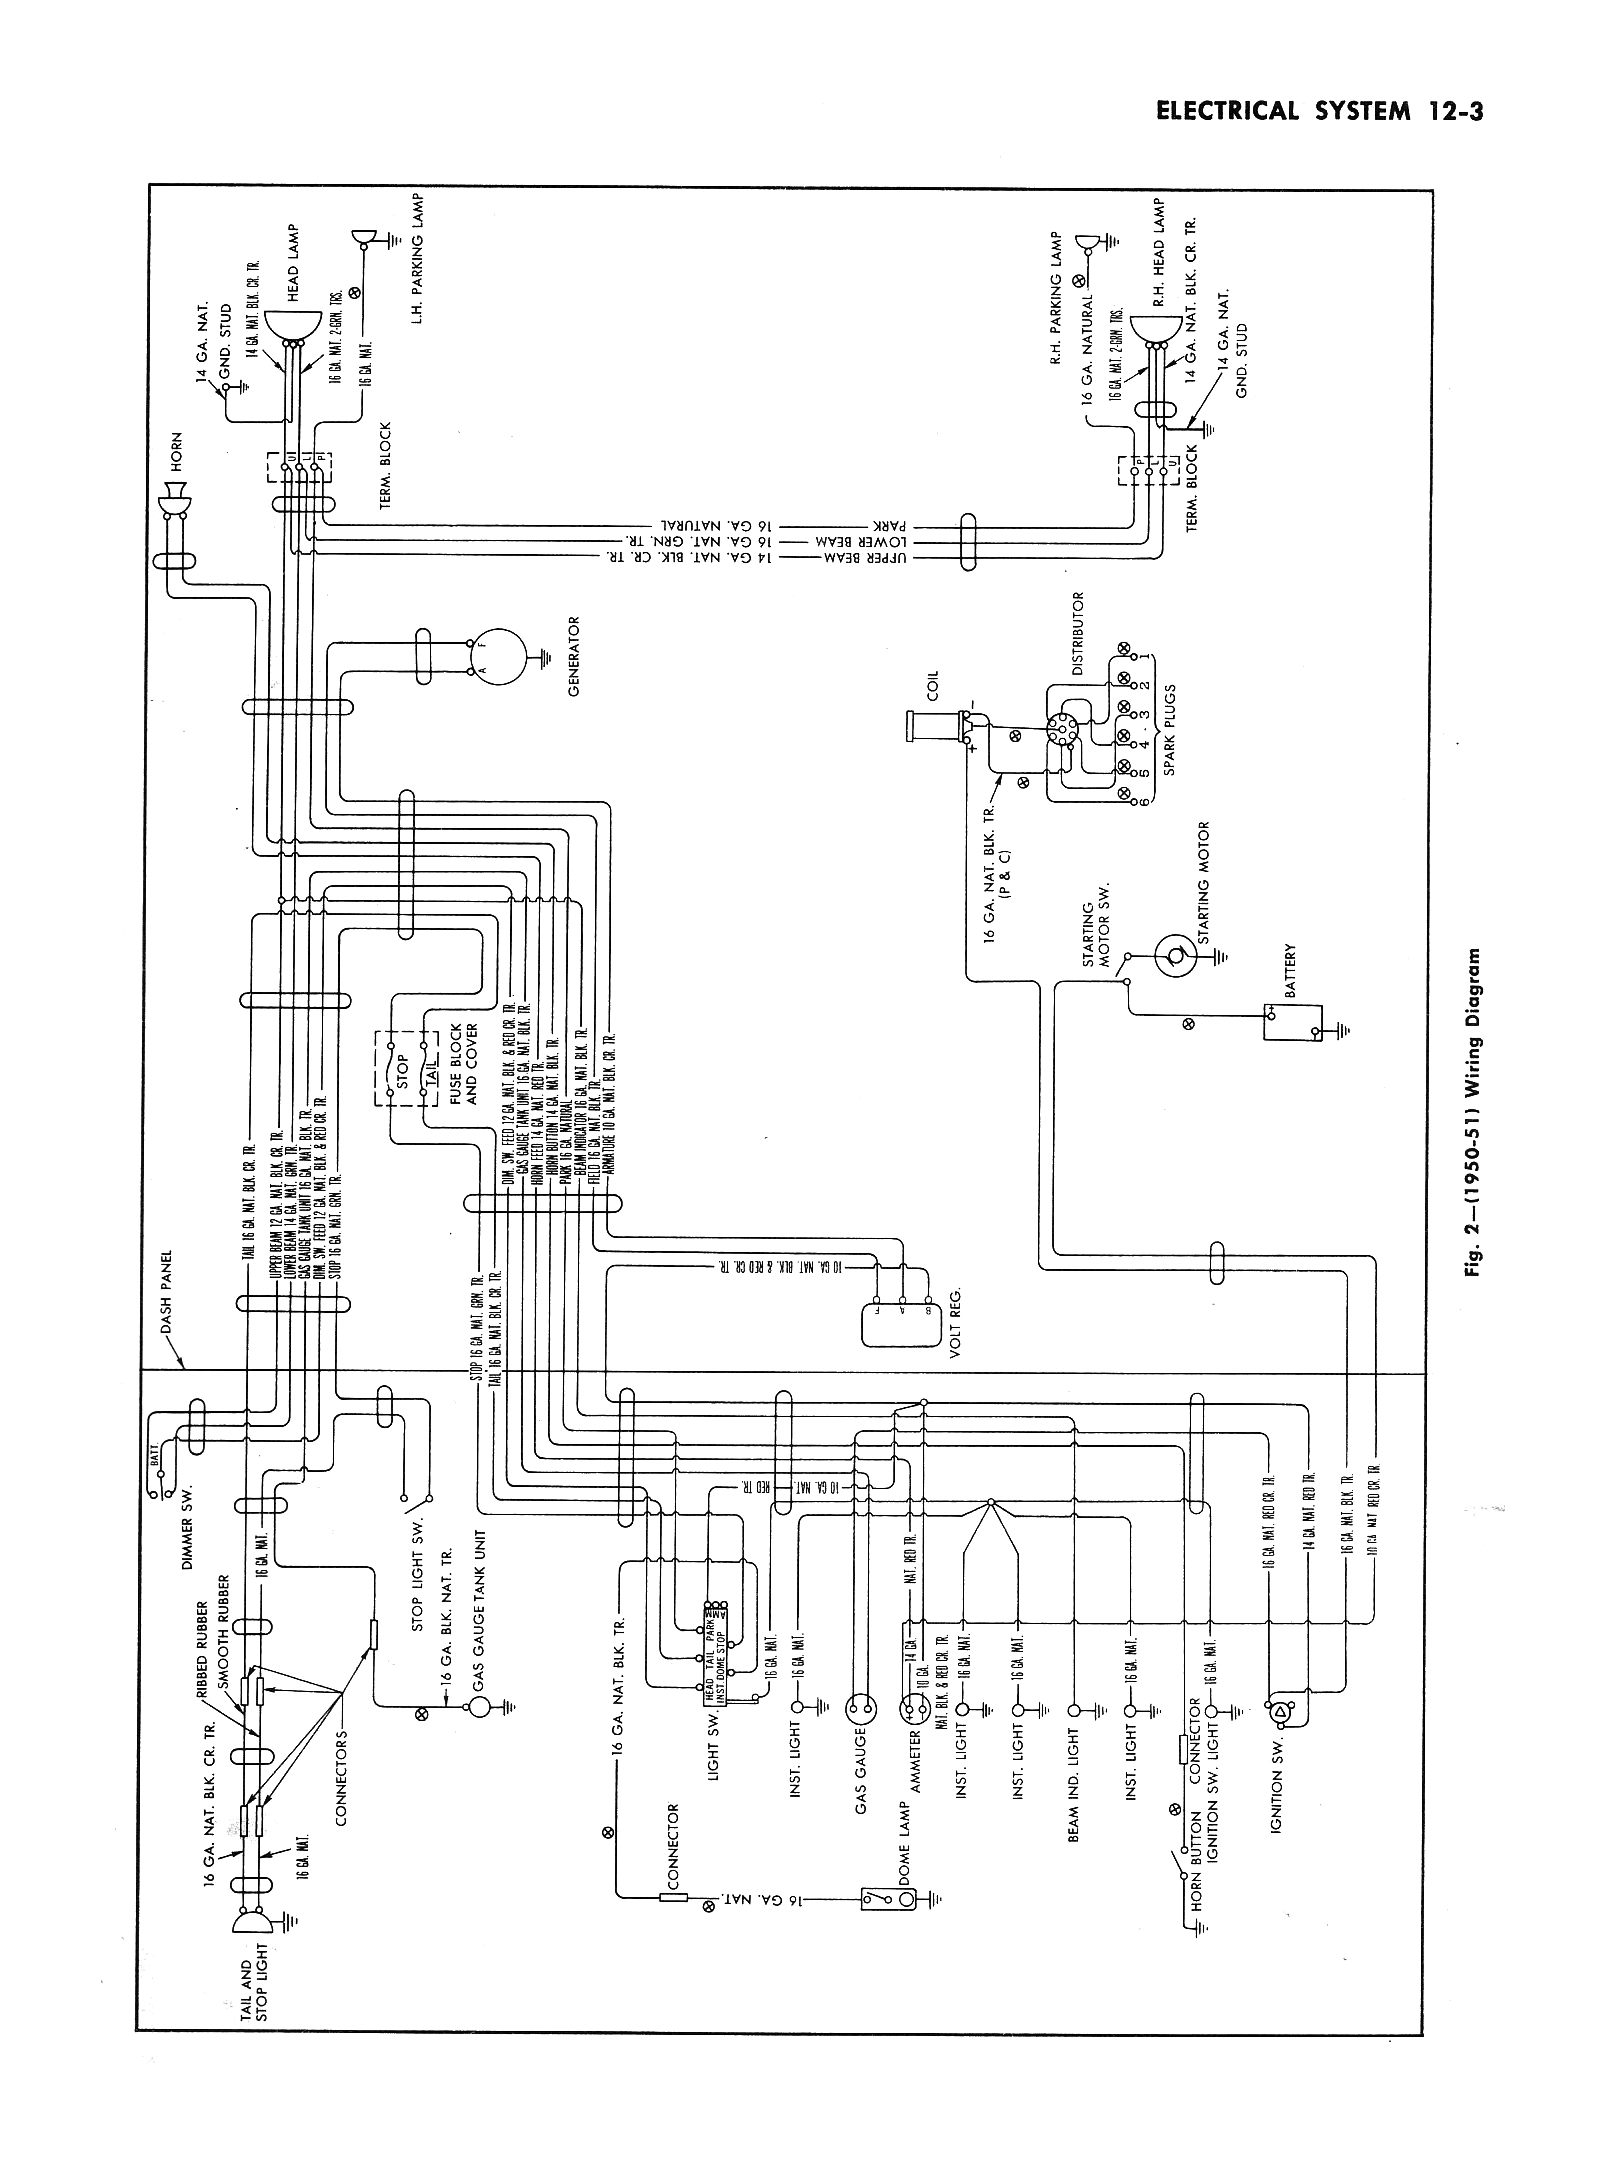 hight resolution of 1950 truck wiring 1950 passenger car wiring 2 1950 truck wiring